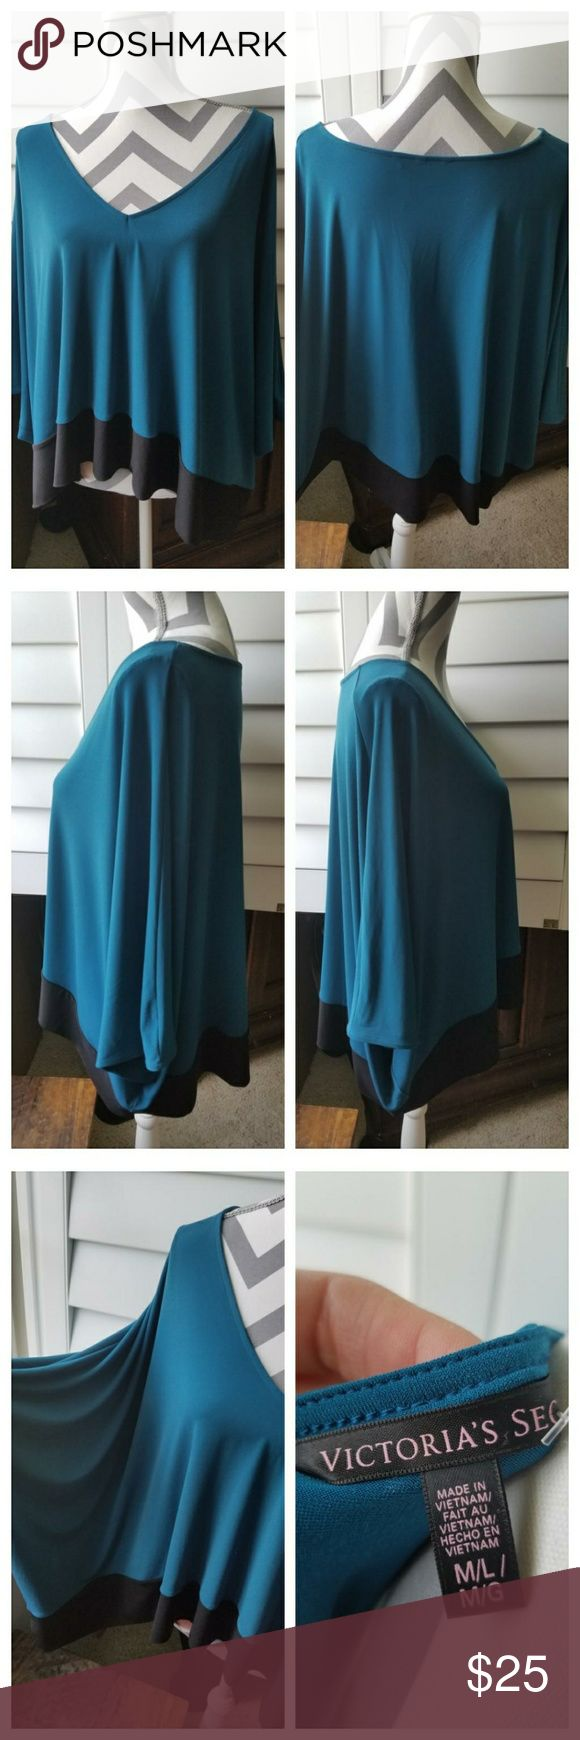 NWOT Victoria's Secret Poncho Style Lounge Top NWOT Victoria's Secret Poncho Style Lounge Top Teal with black panel, deep V-neckline in like new condition and no flaws. Too short for my liking but wouldn't say it is cropped, I am just long waisted. Measurements upon request. Victoria's Secret Tops